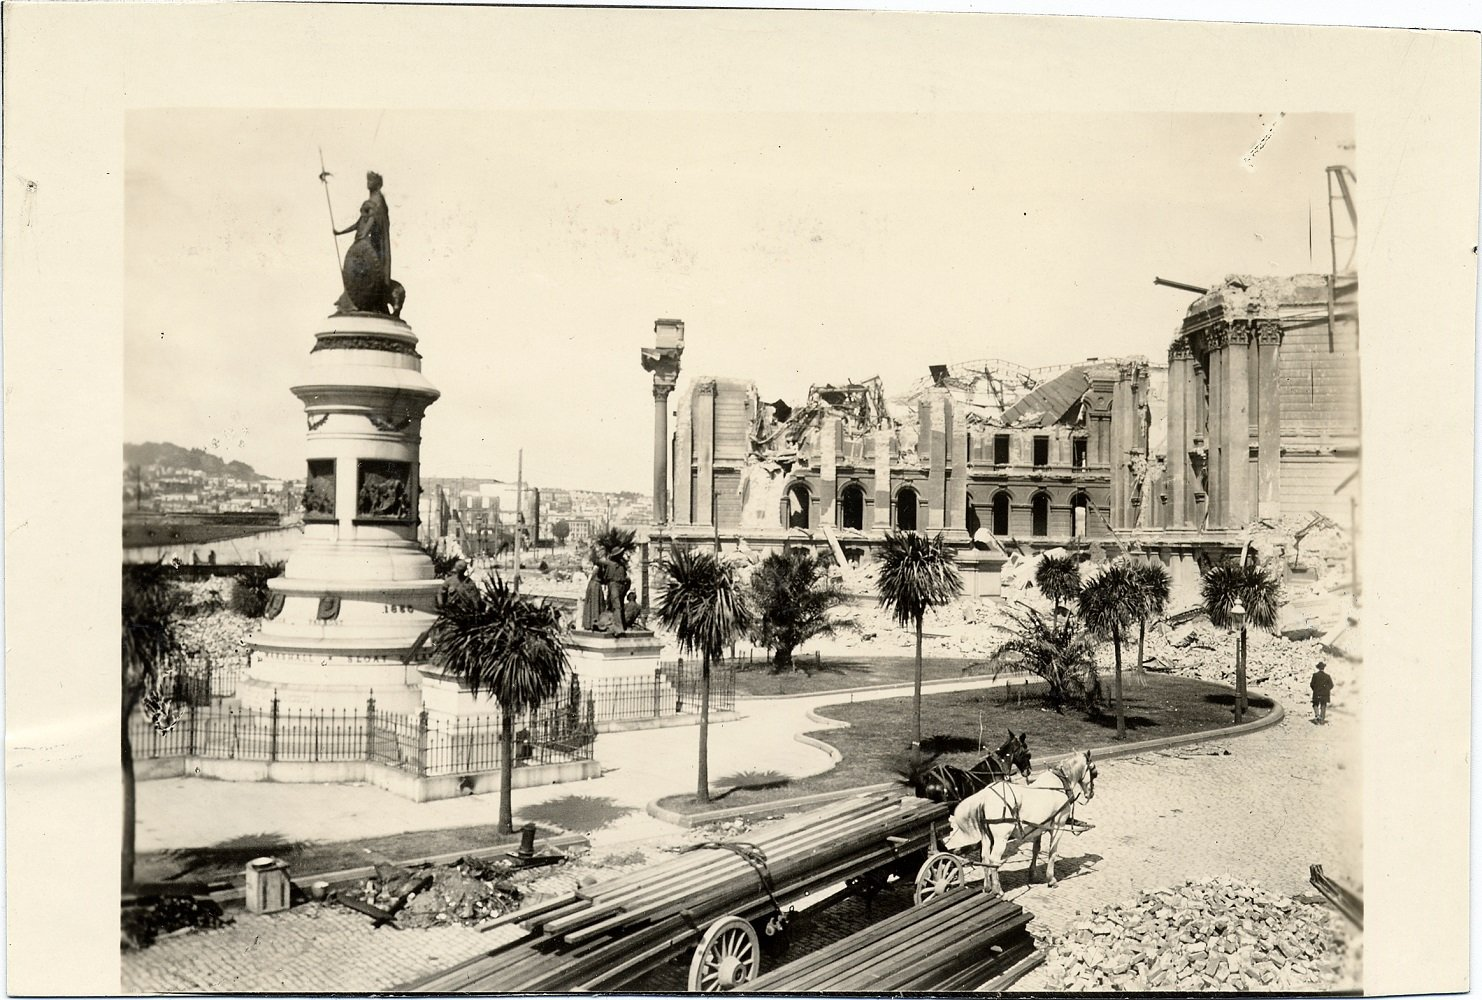 [Pioneer Monument and ruins of City Hall, 1906]. Photo ID# AAA-4776. SAN FRANCISCO HISTORY CENTER, SAN FRANCISCO PUBLIC LIBRARY.